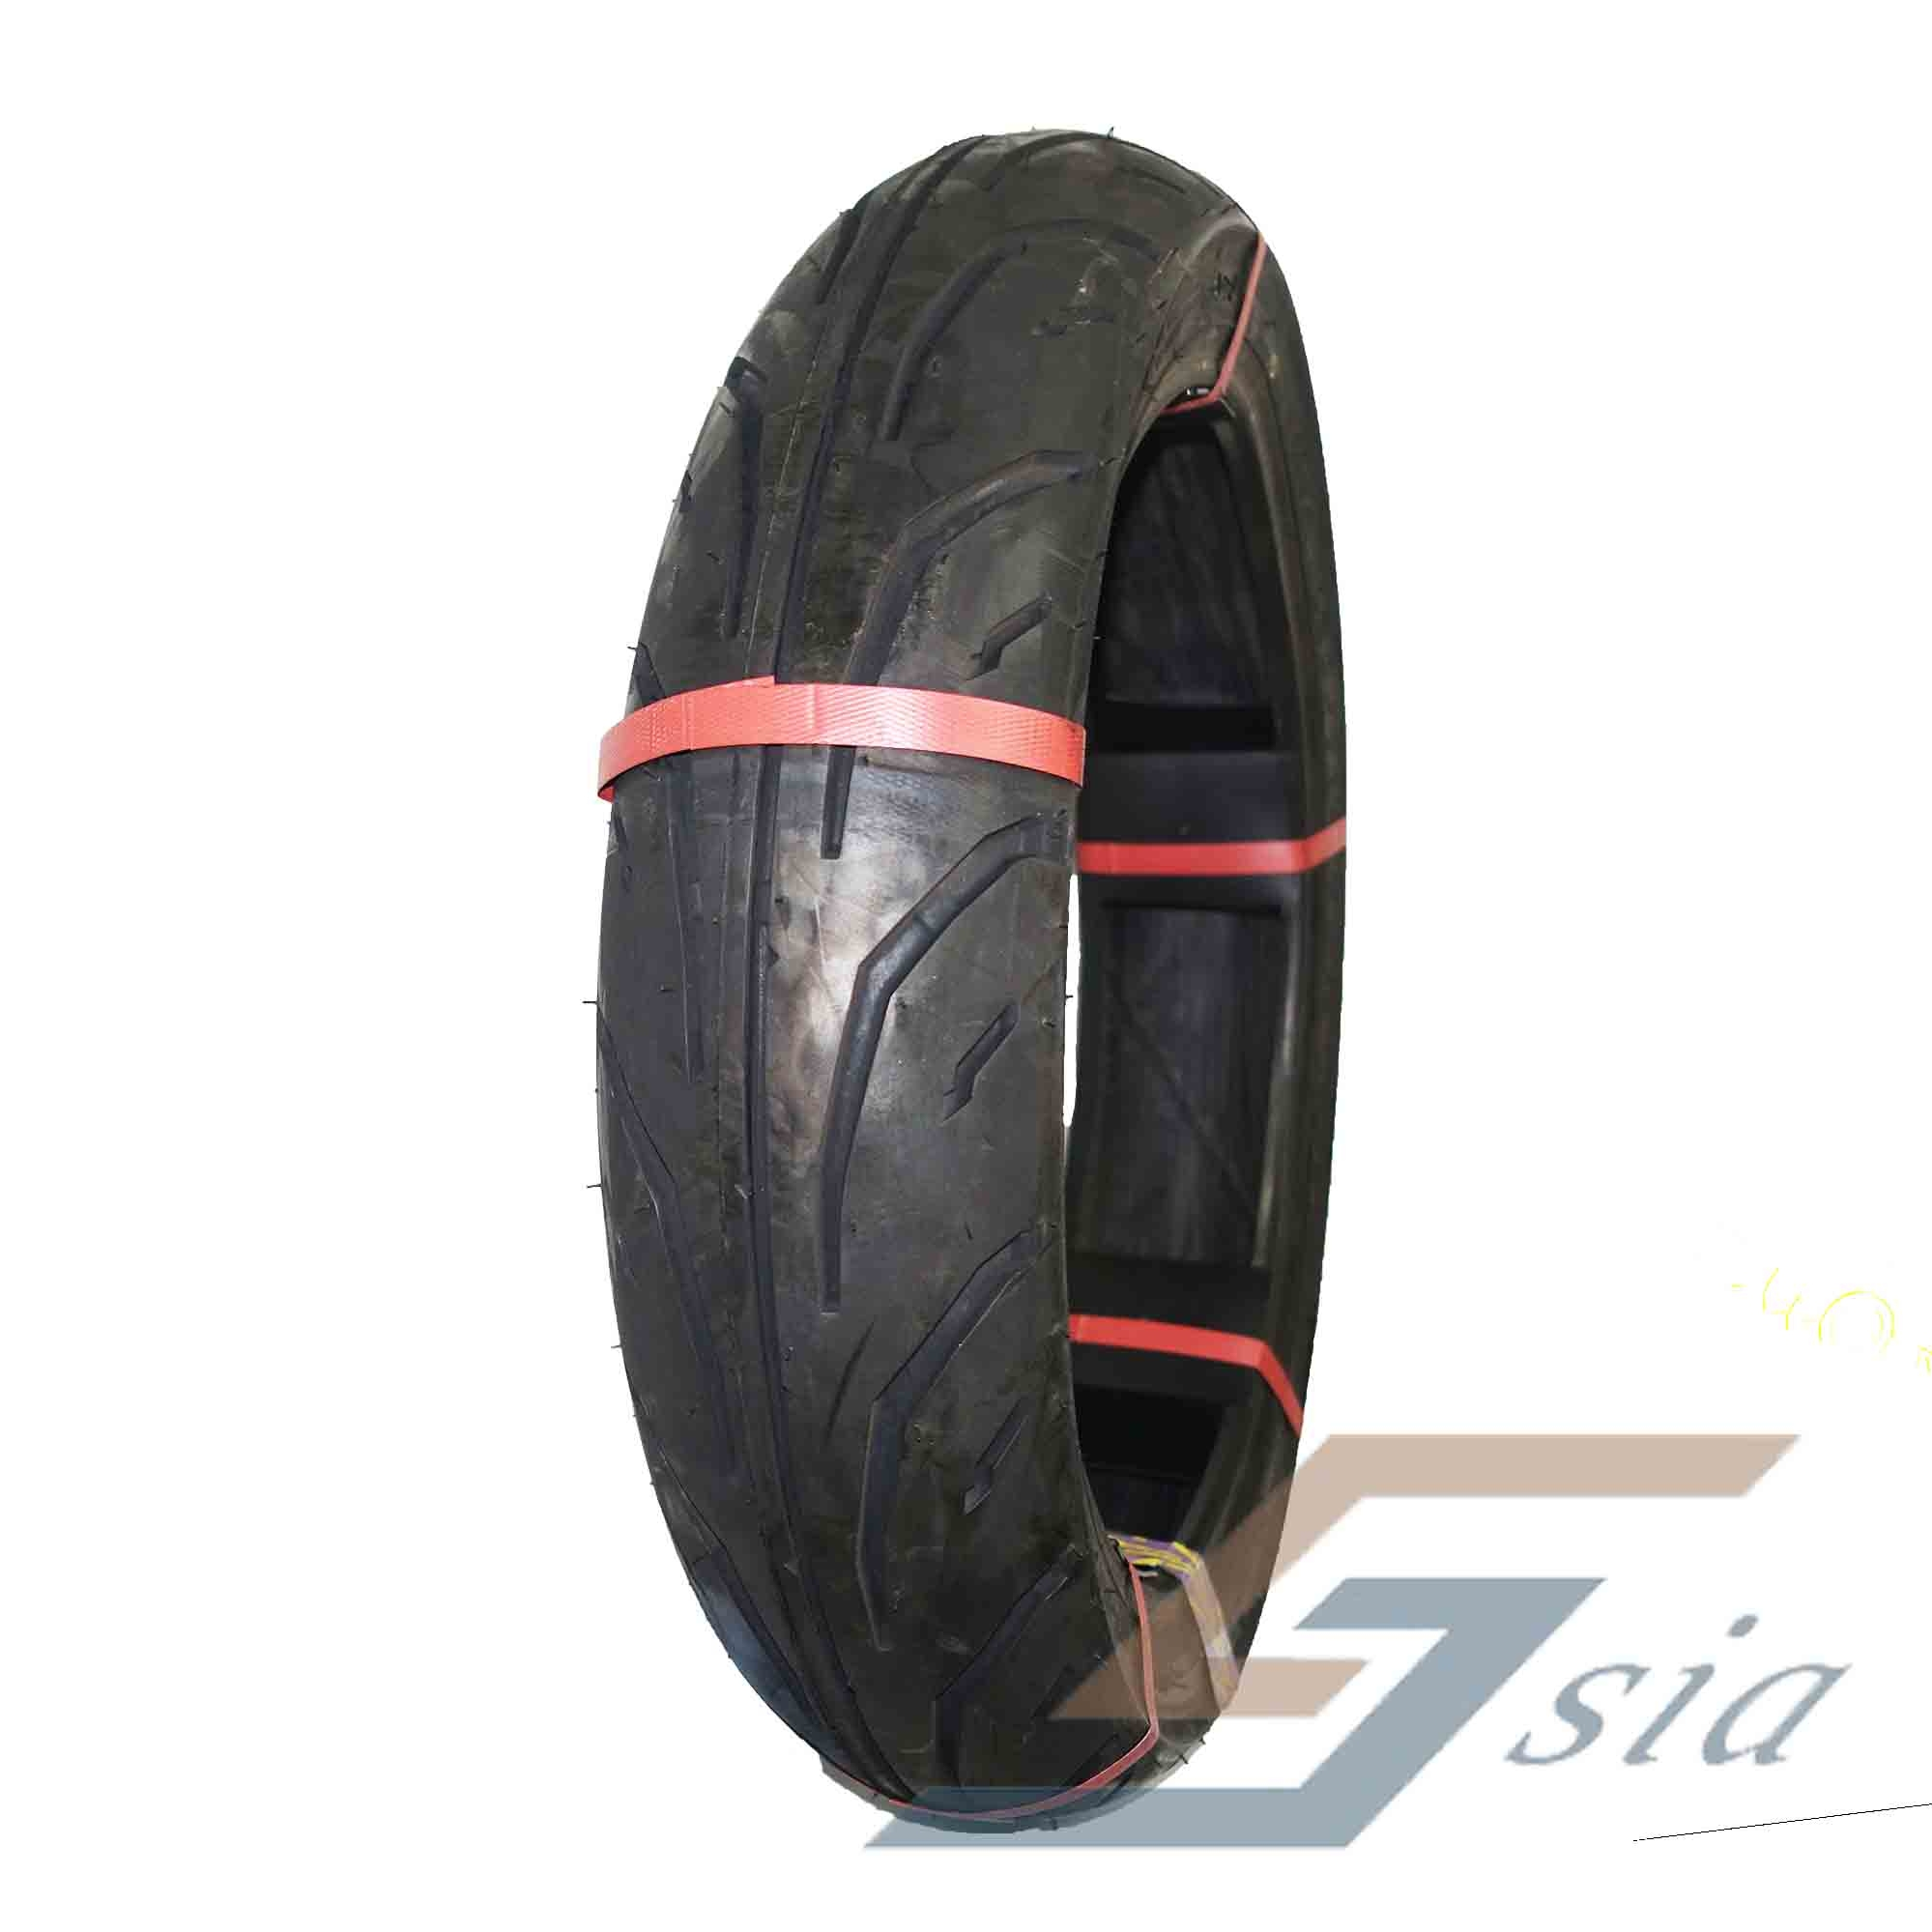 FKR RS900 130/70-17 Tubeless Tyre Motorcycle